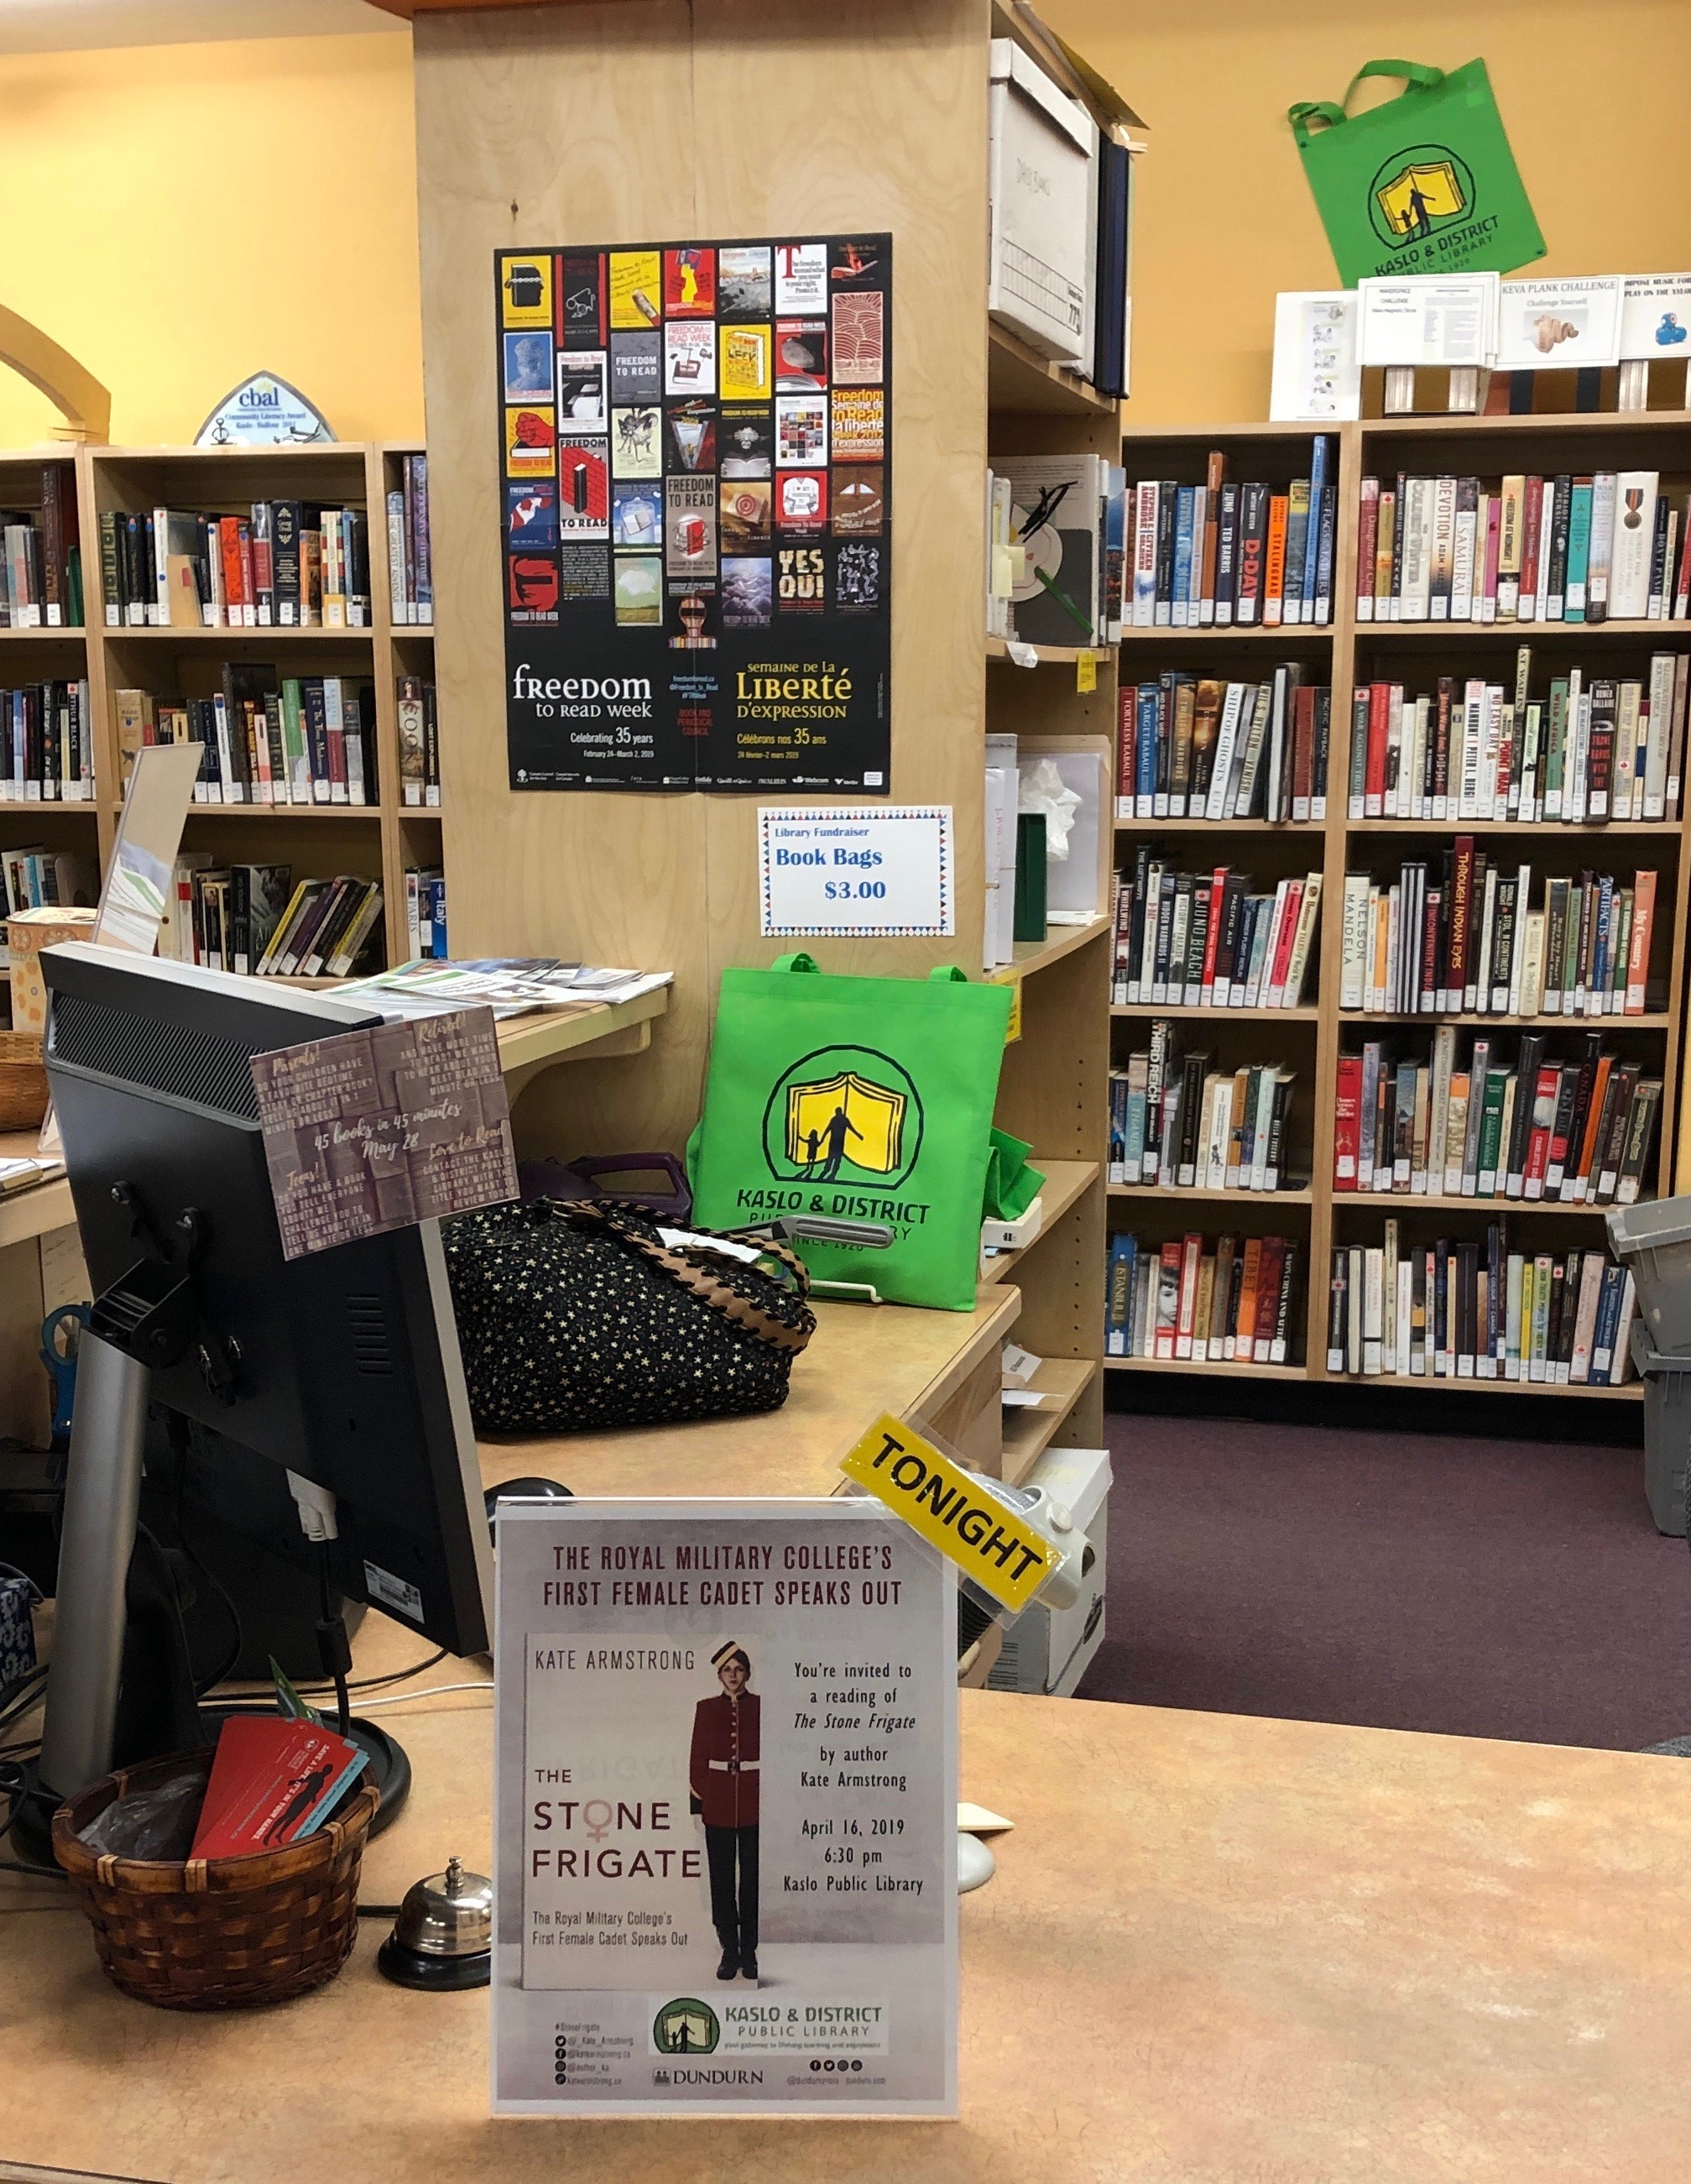 The billboard on the Kaslo & District Public Library's front desk announcing my speaking and reading event for the evening..